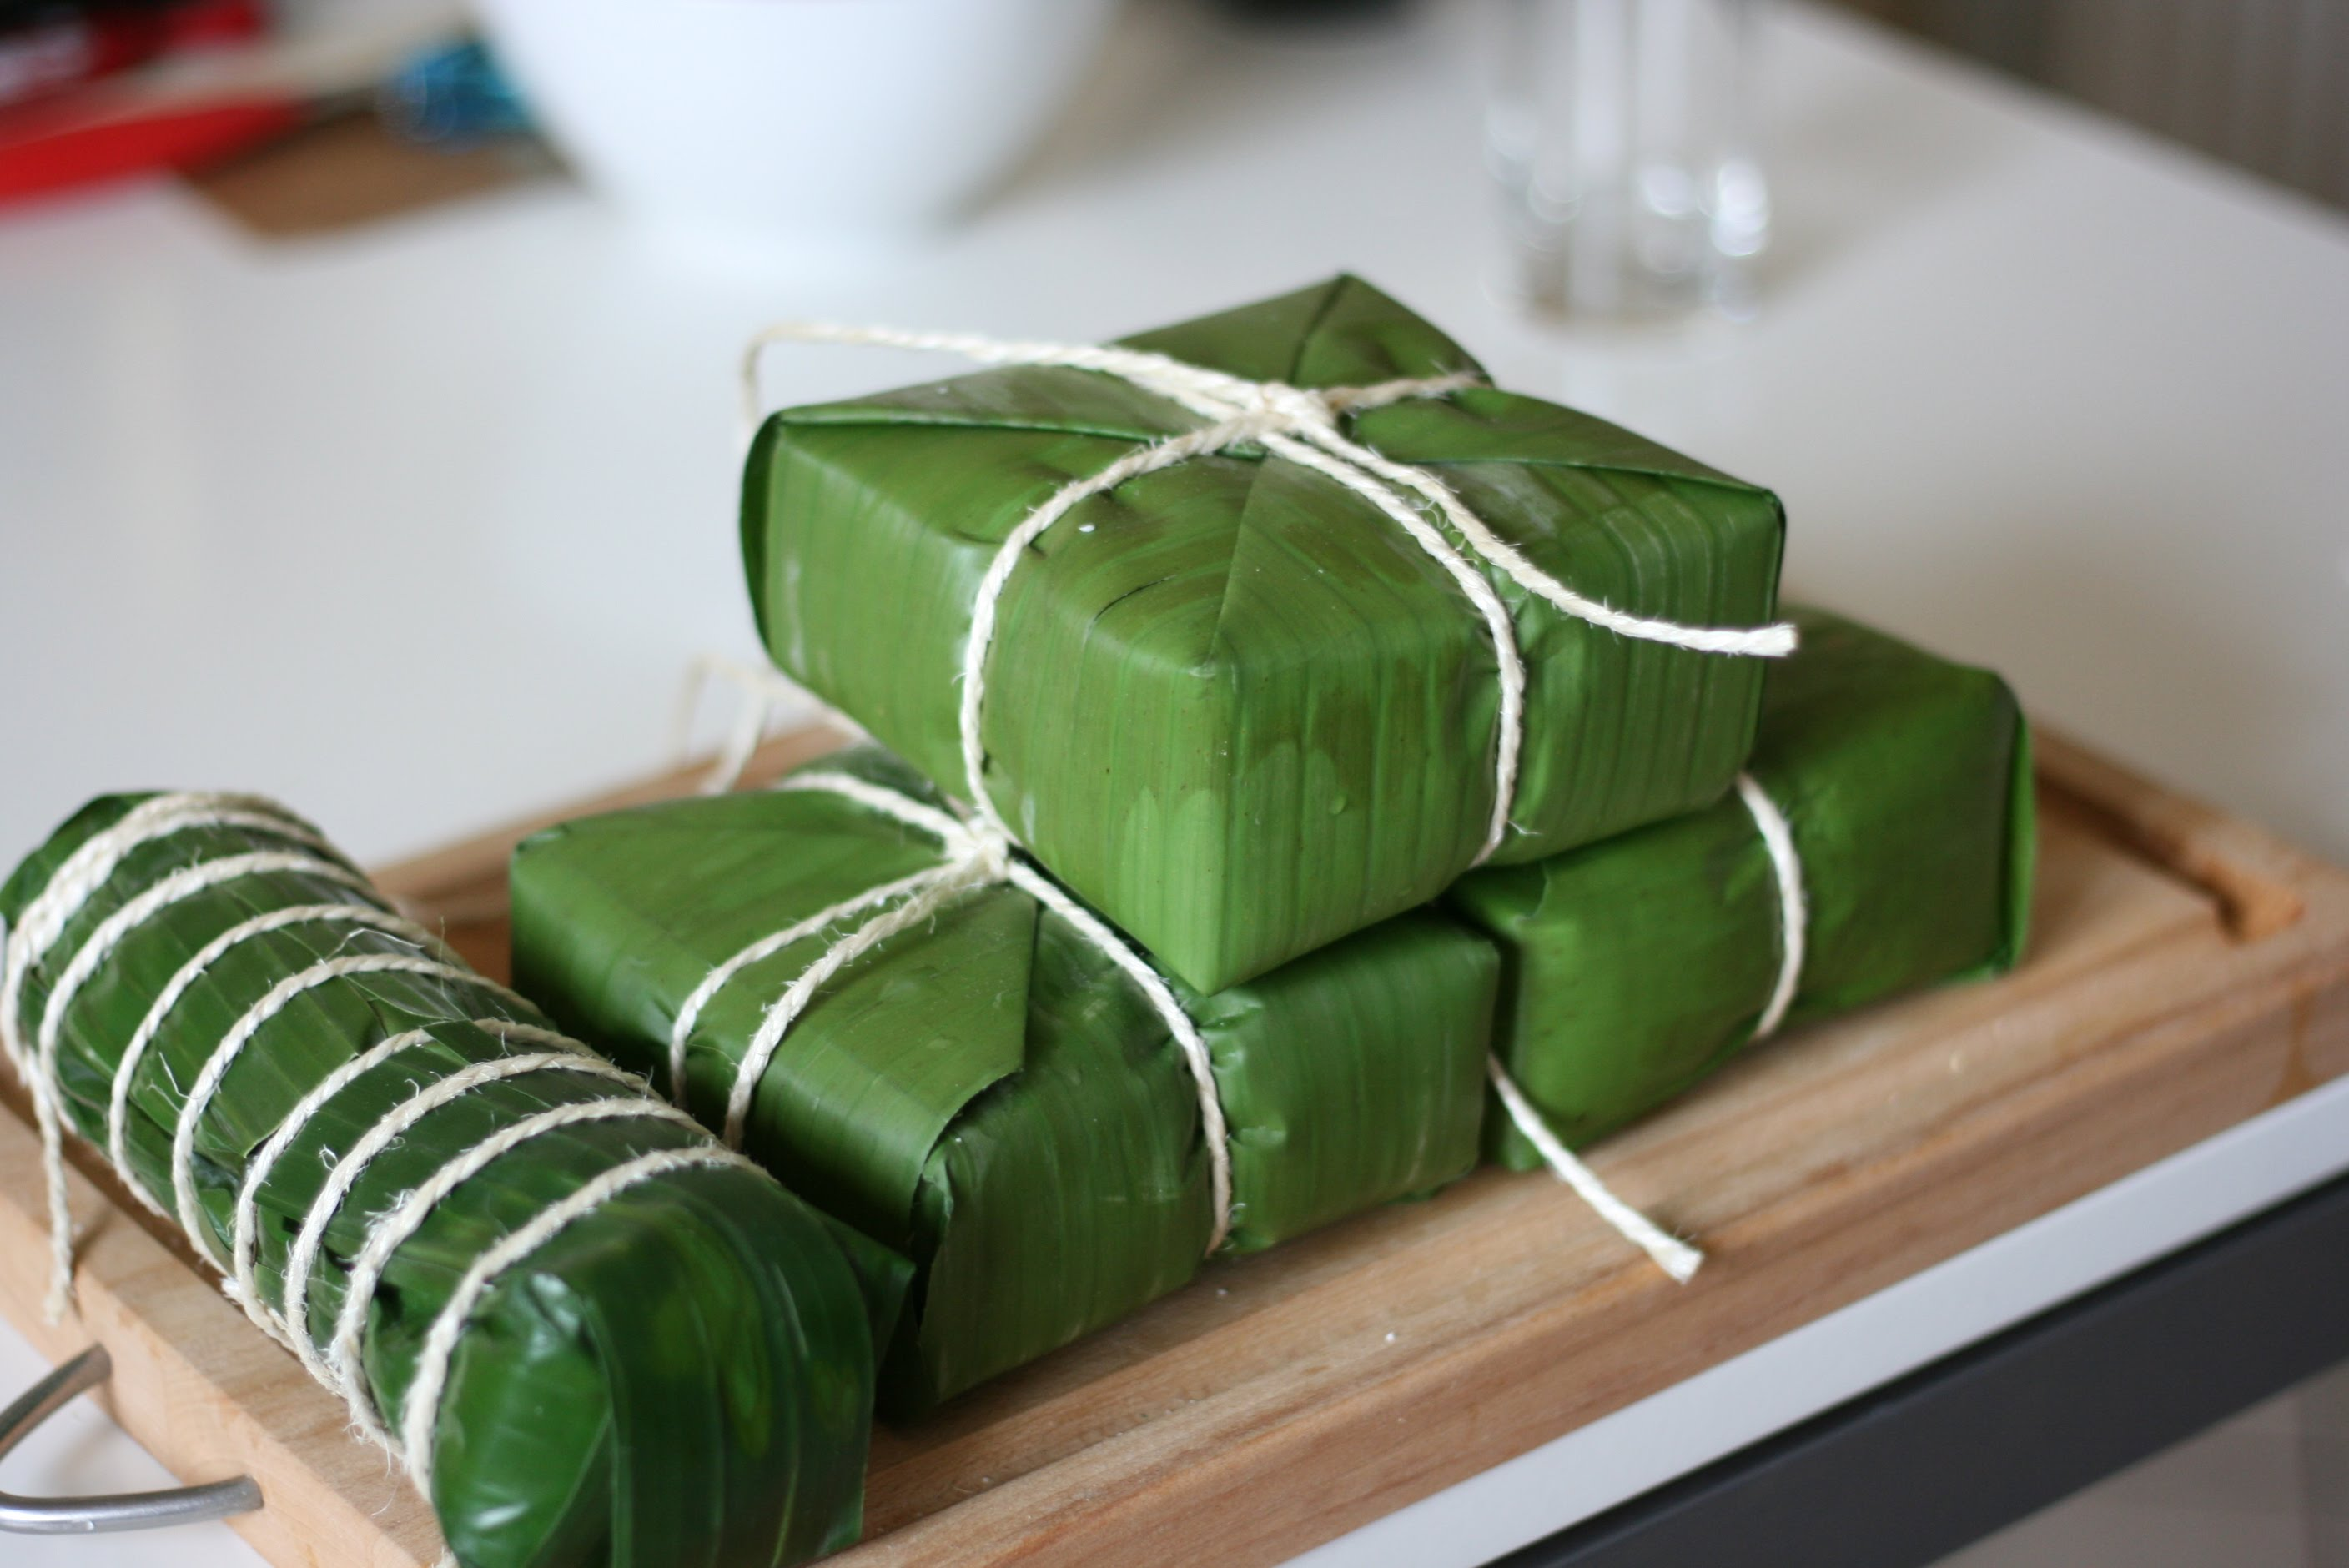 chung cake Banh chung editor's note: the recipe and vietnamese rice cakes in banana leaves bring pot of water to boil before lowering cake in.